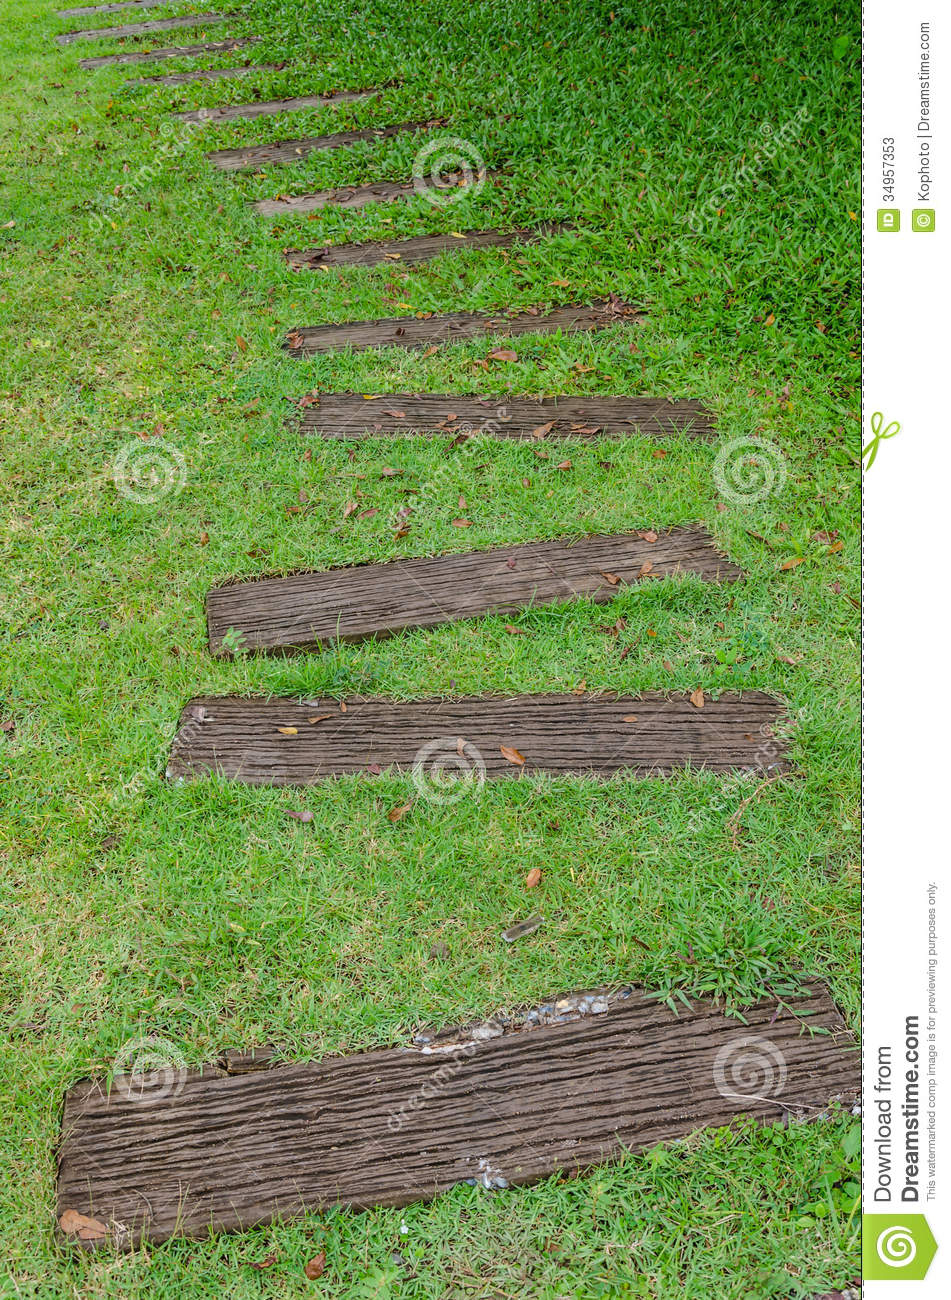 Stone path on green grass stock image image of curve for Stone path in grass